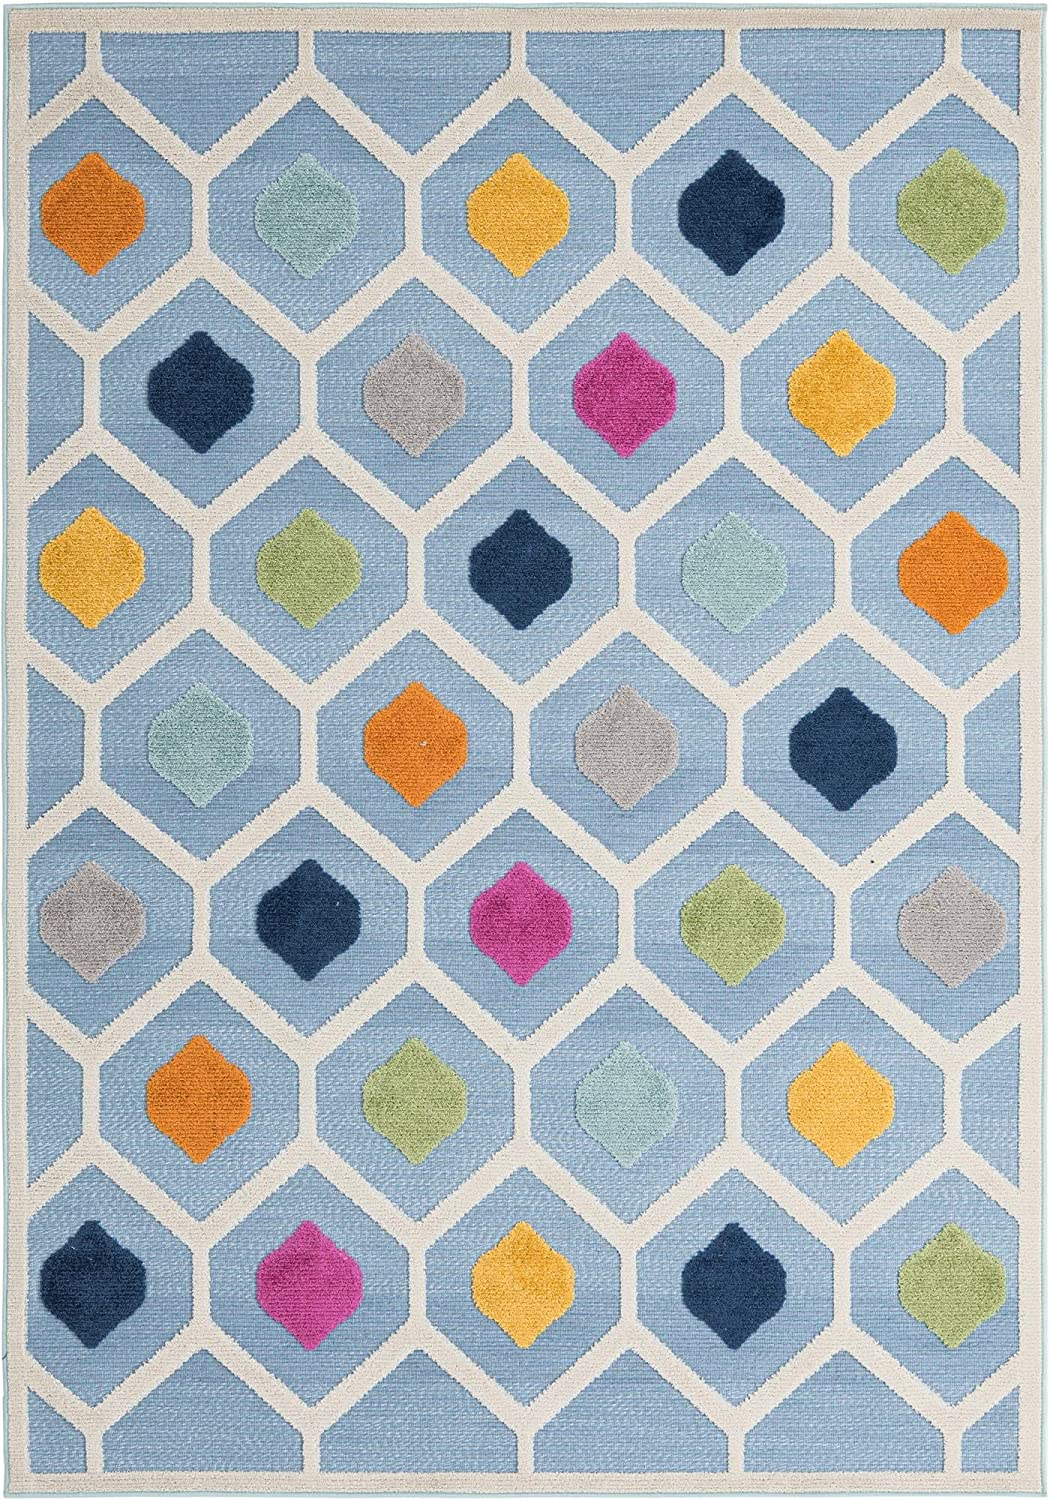 Rugs.com Aruba Outdoor Collection Rug Max Louisville-Jefferson County Mall 68% OFF – x Ru 6' Blue 9' Low-Pile